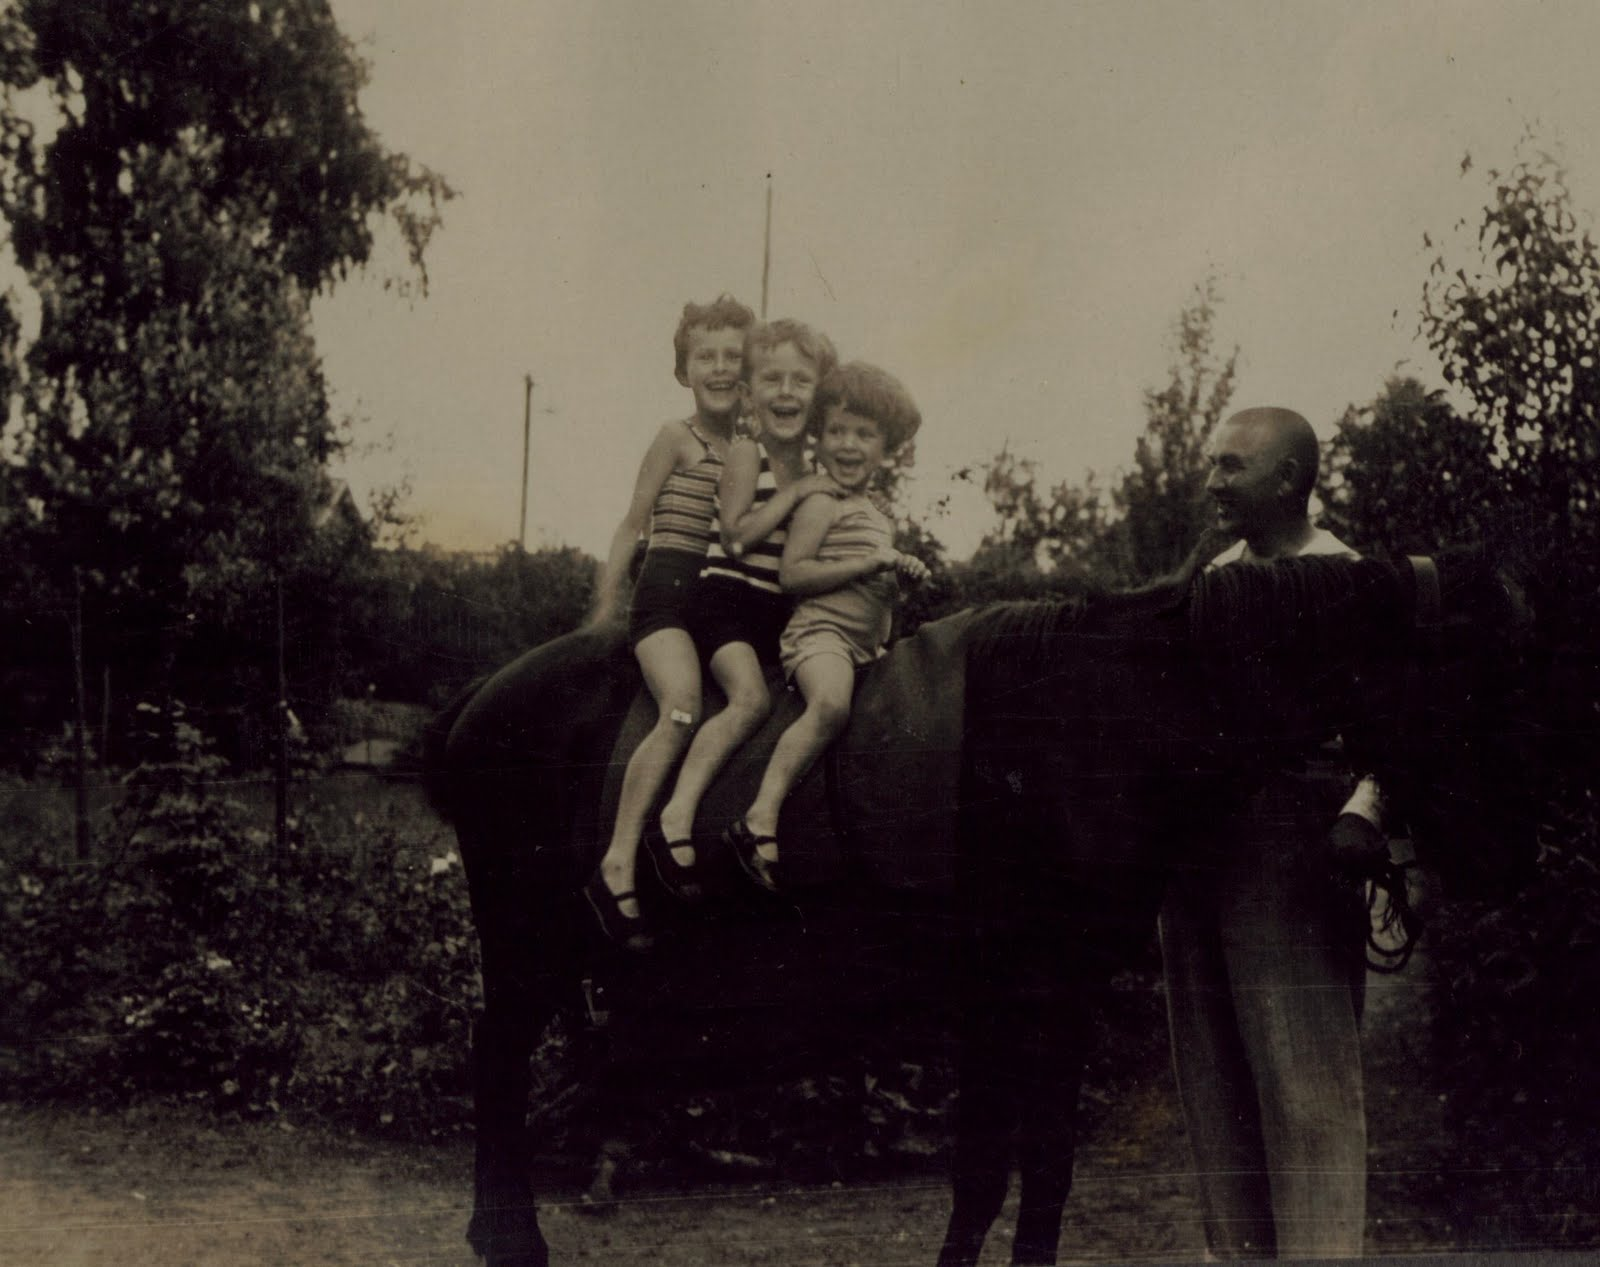 From left_  Renata Aron, Gert Aron & Marianne (Janne) Aron on horse -- July 1932